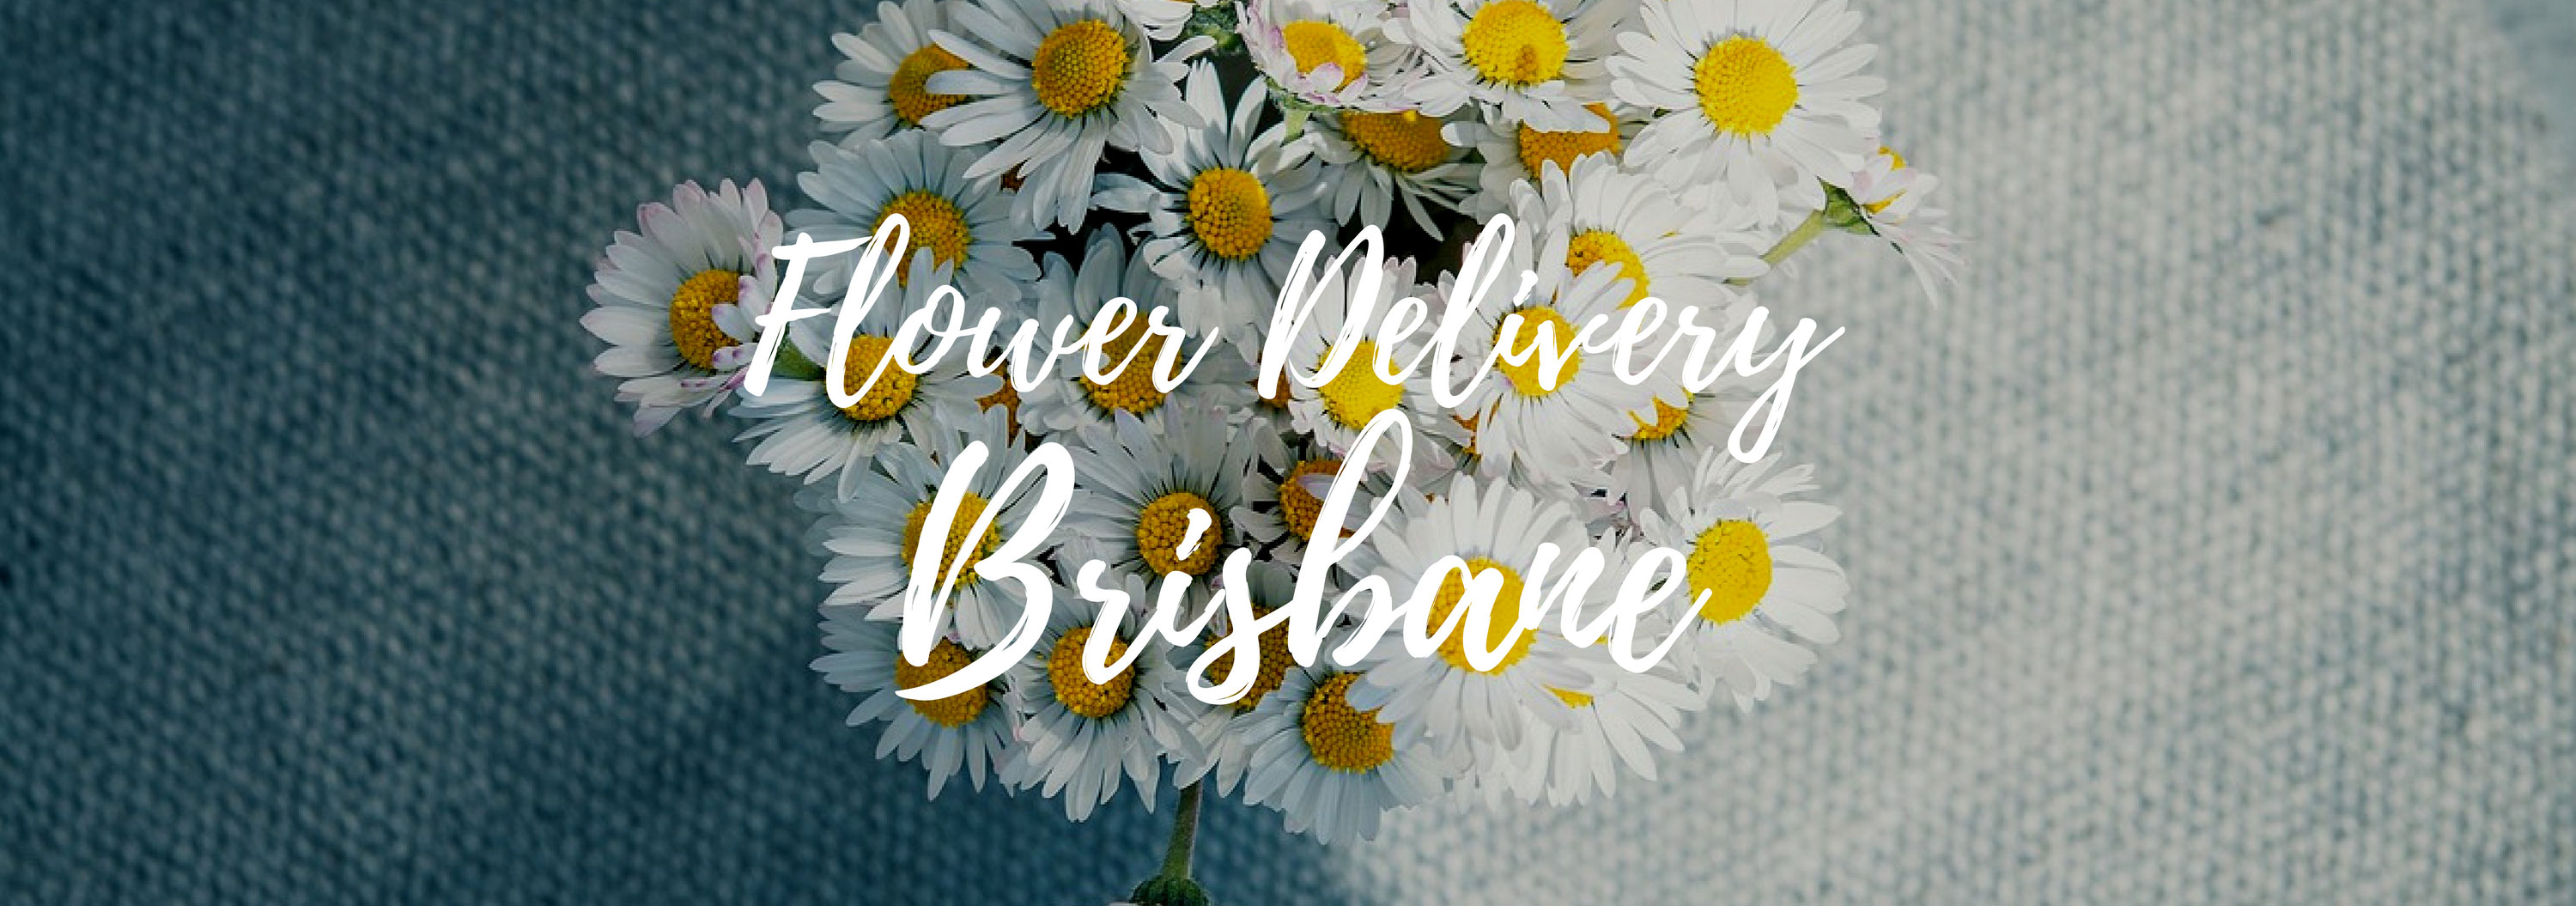 The 18 Best Options for Flower Delivery in Brisbane